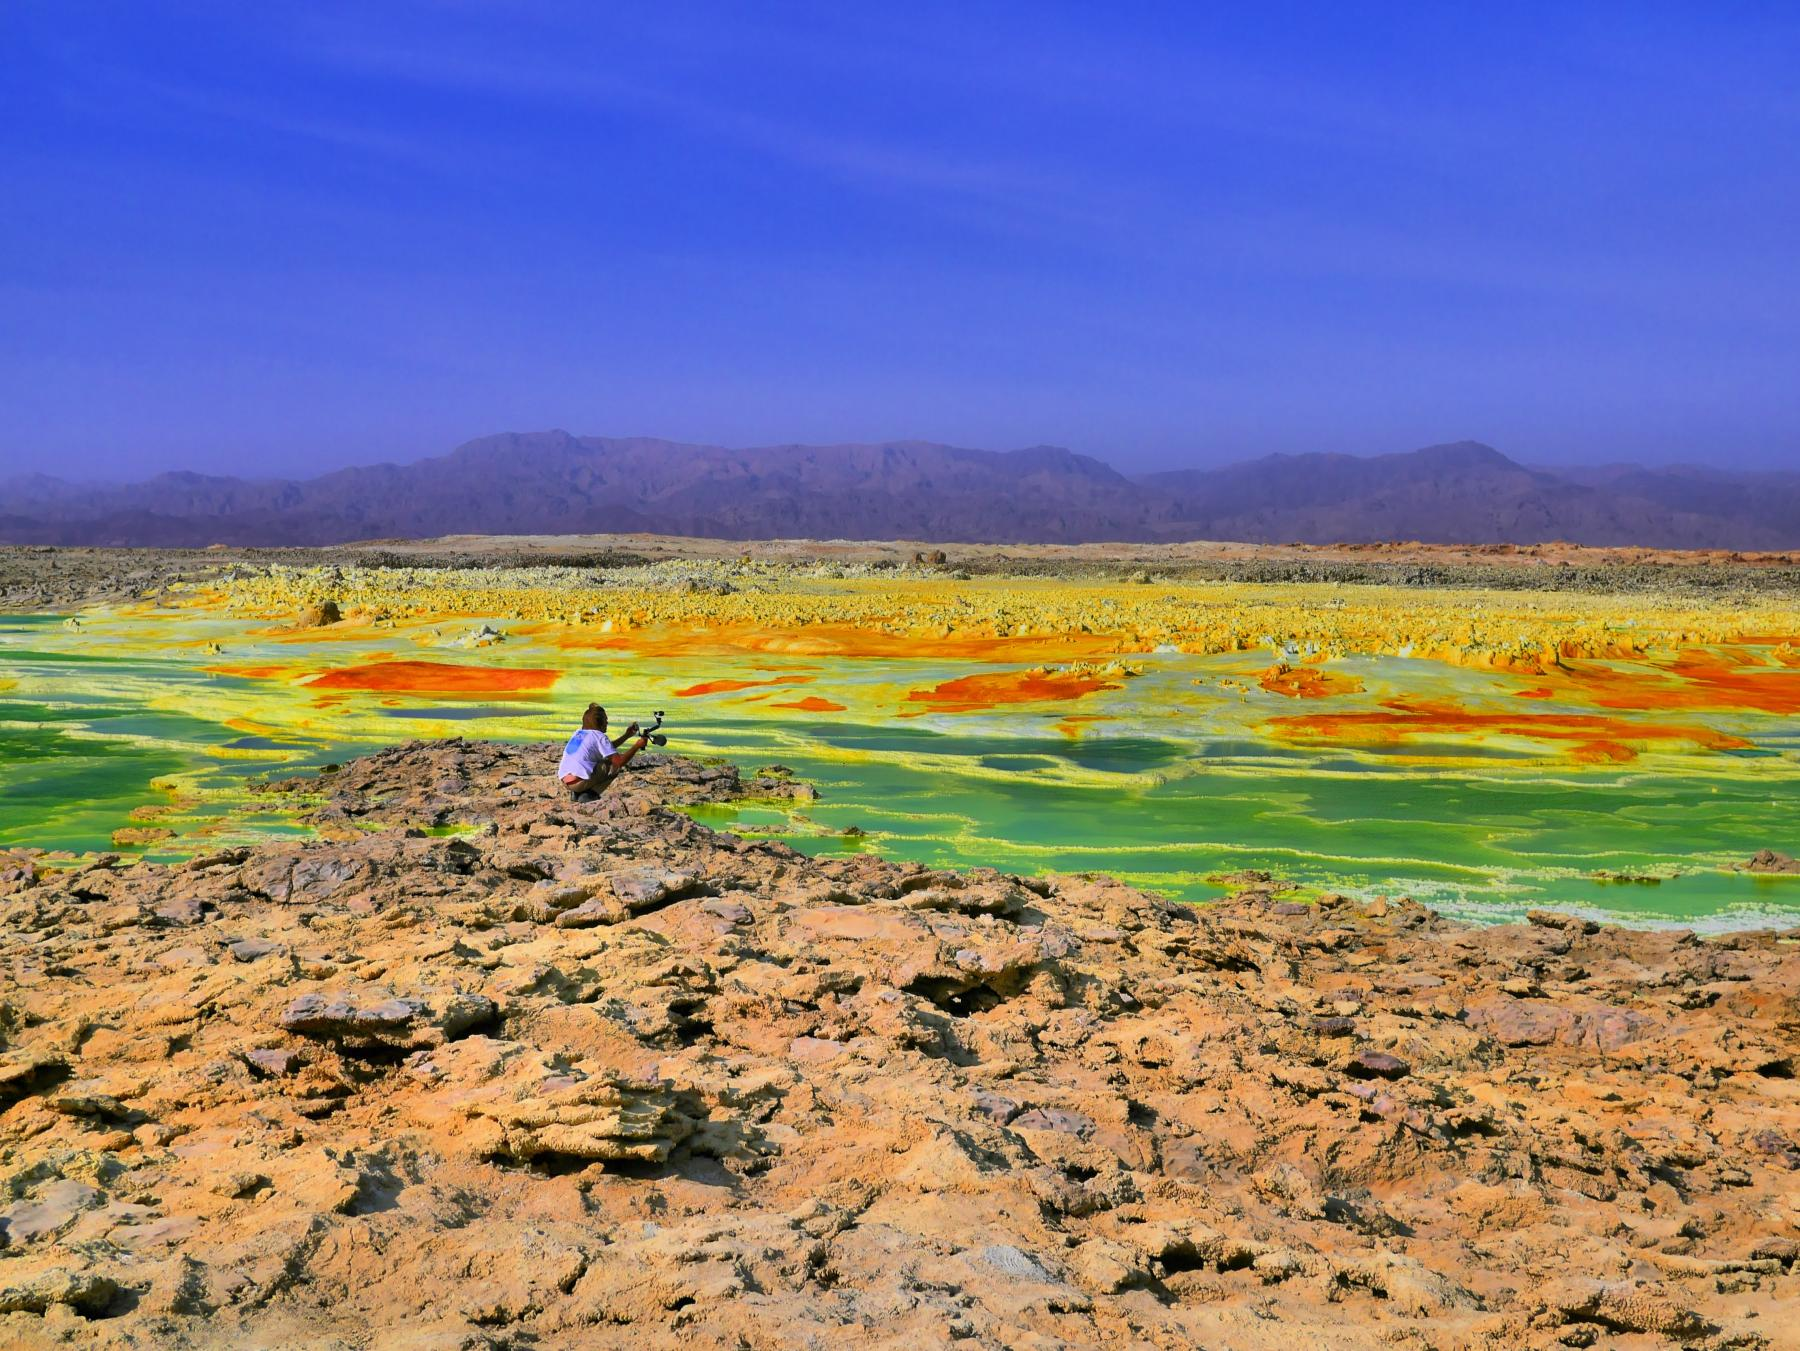 Ethiopia - the alien landscapes found on earth starting at Addis Ababa, Ethiopia